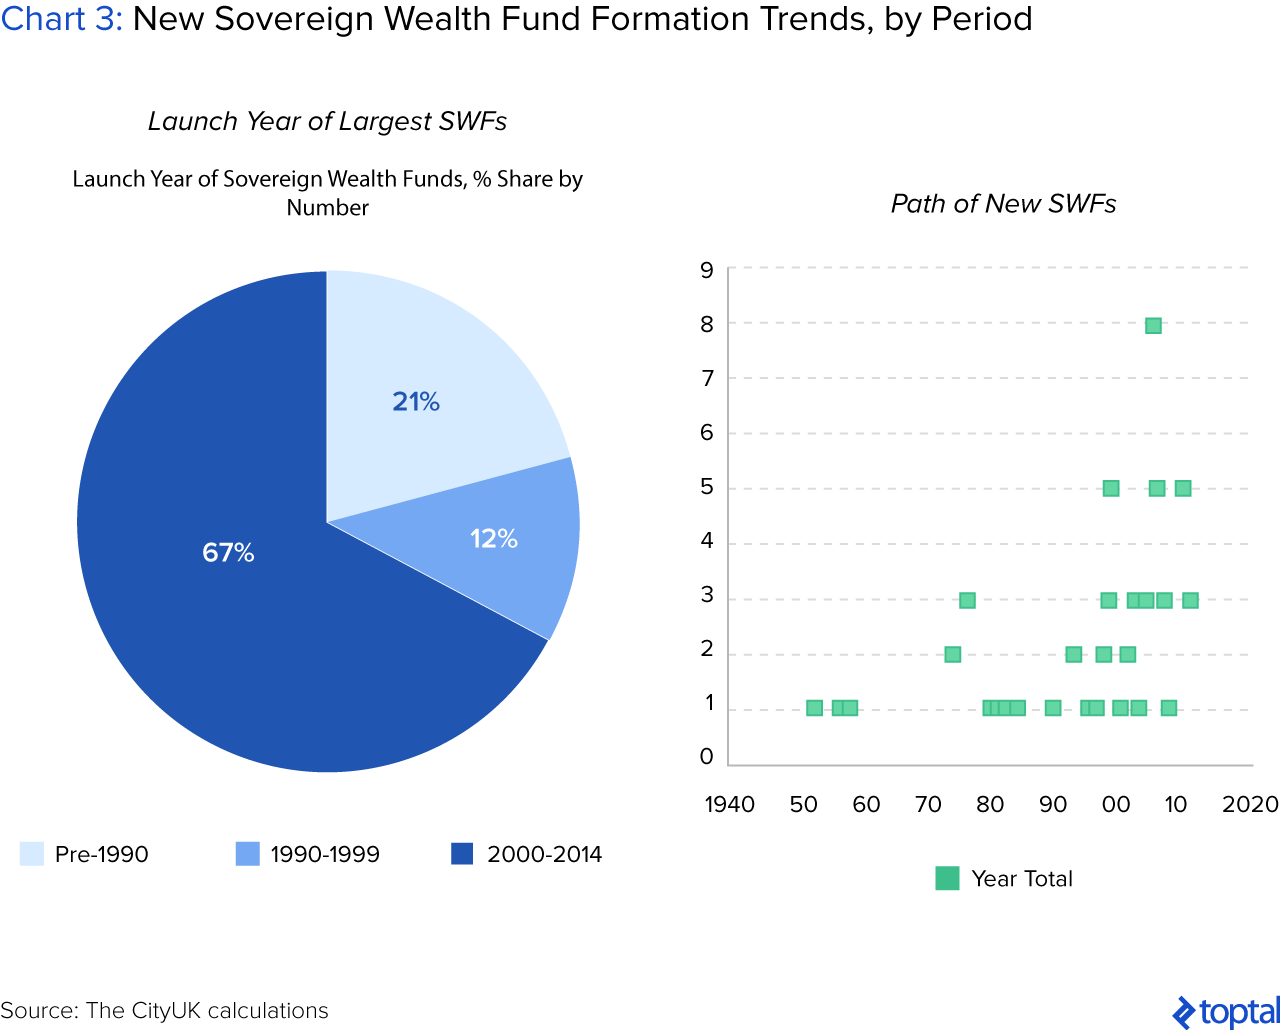 Chart 3: New Sovereign Wealth Fund Formation Trends, by Period